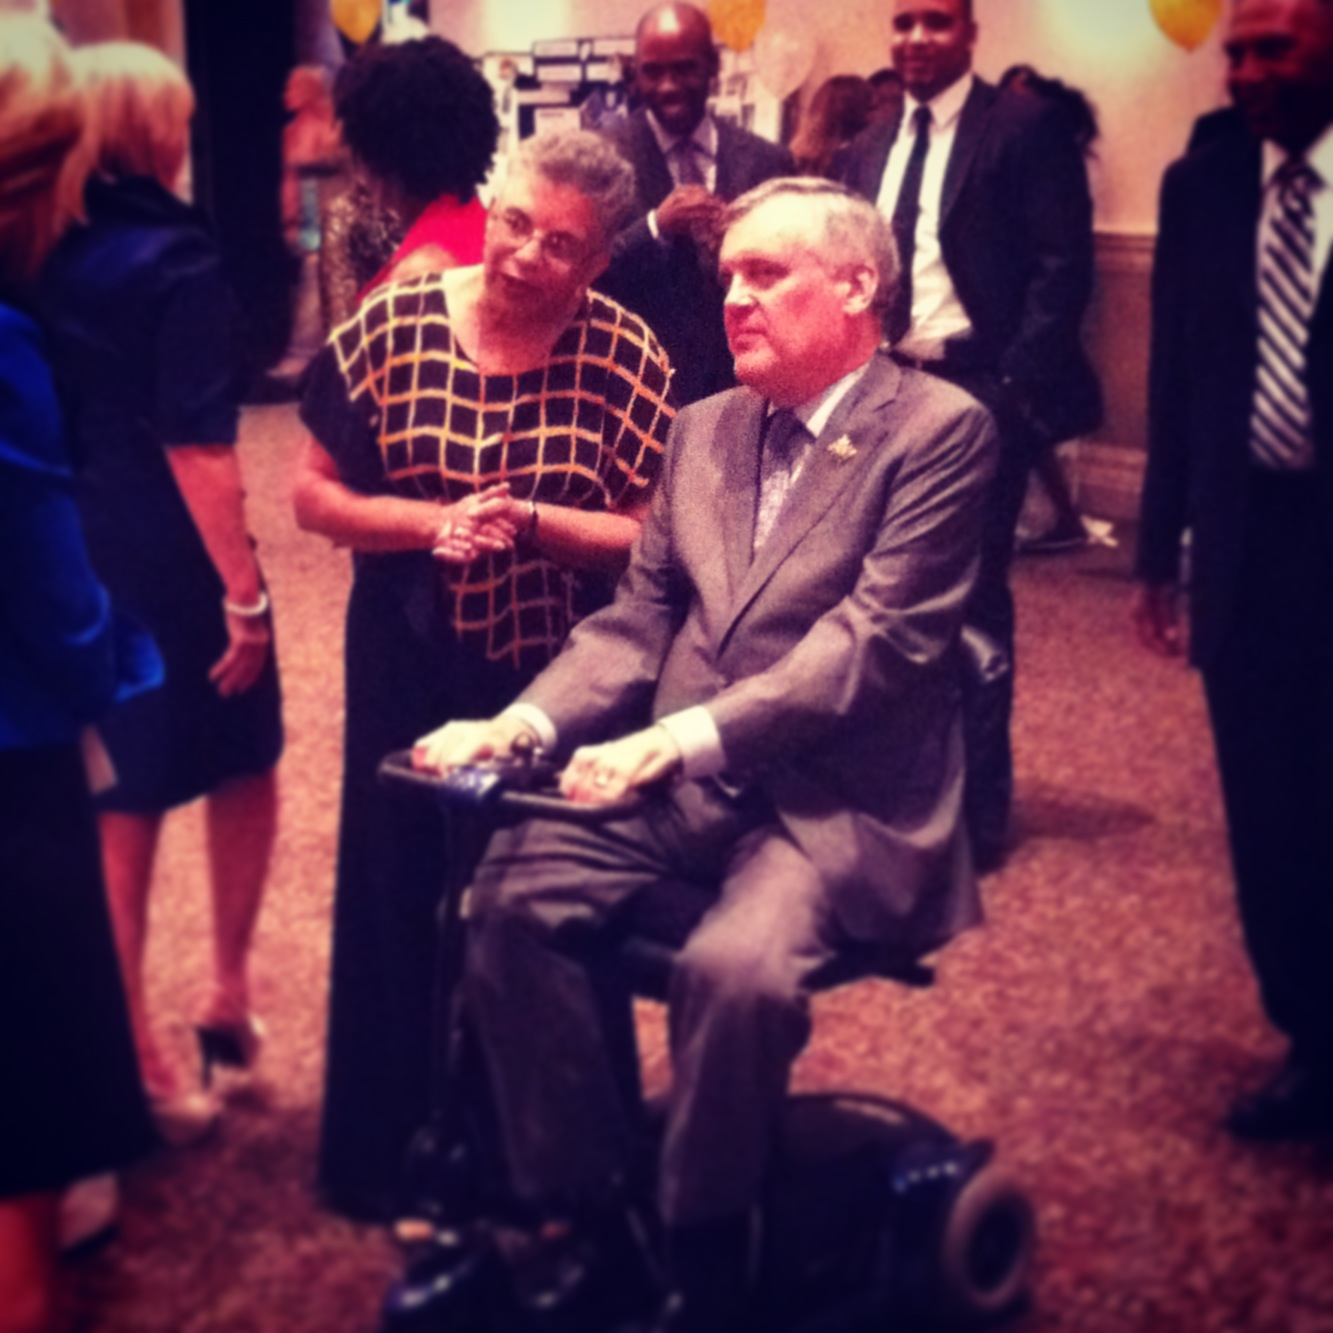 Bernice Carnegie and the Honourable Lieutenant Governor David Onley